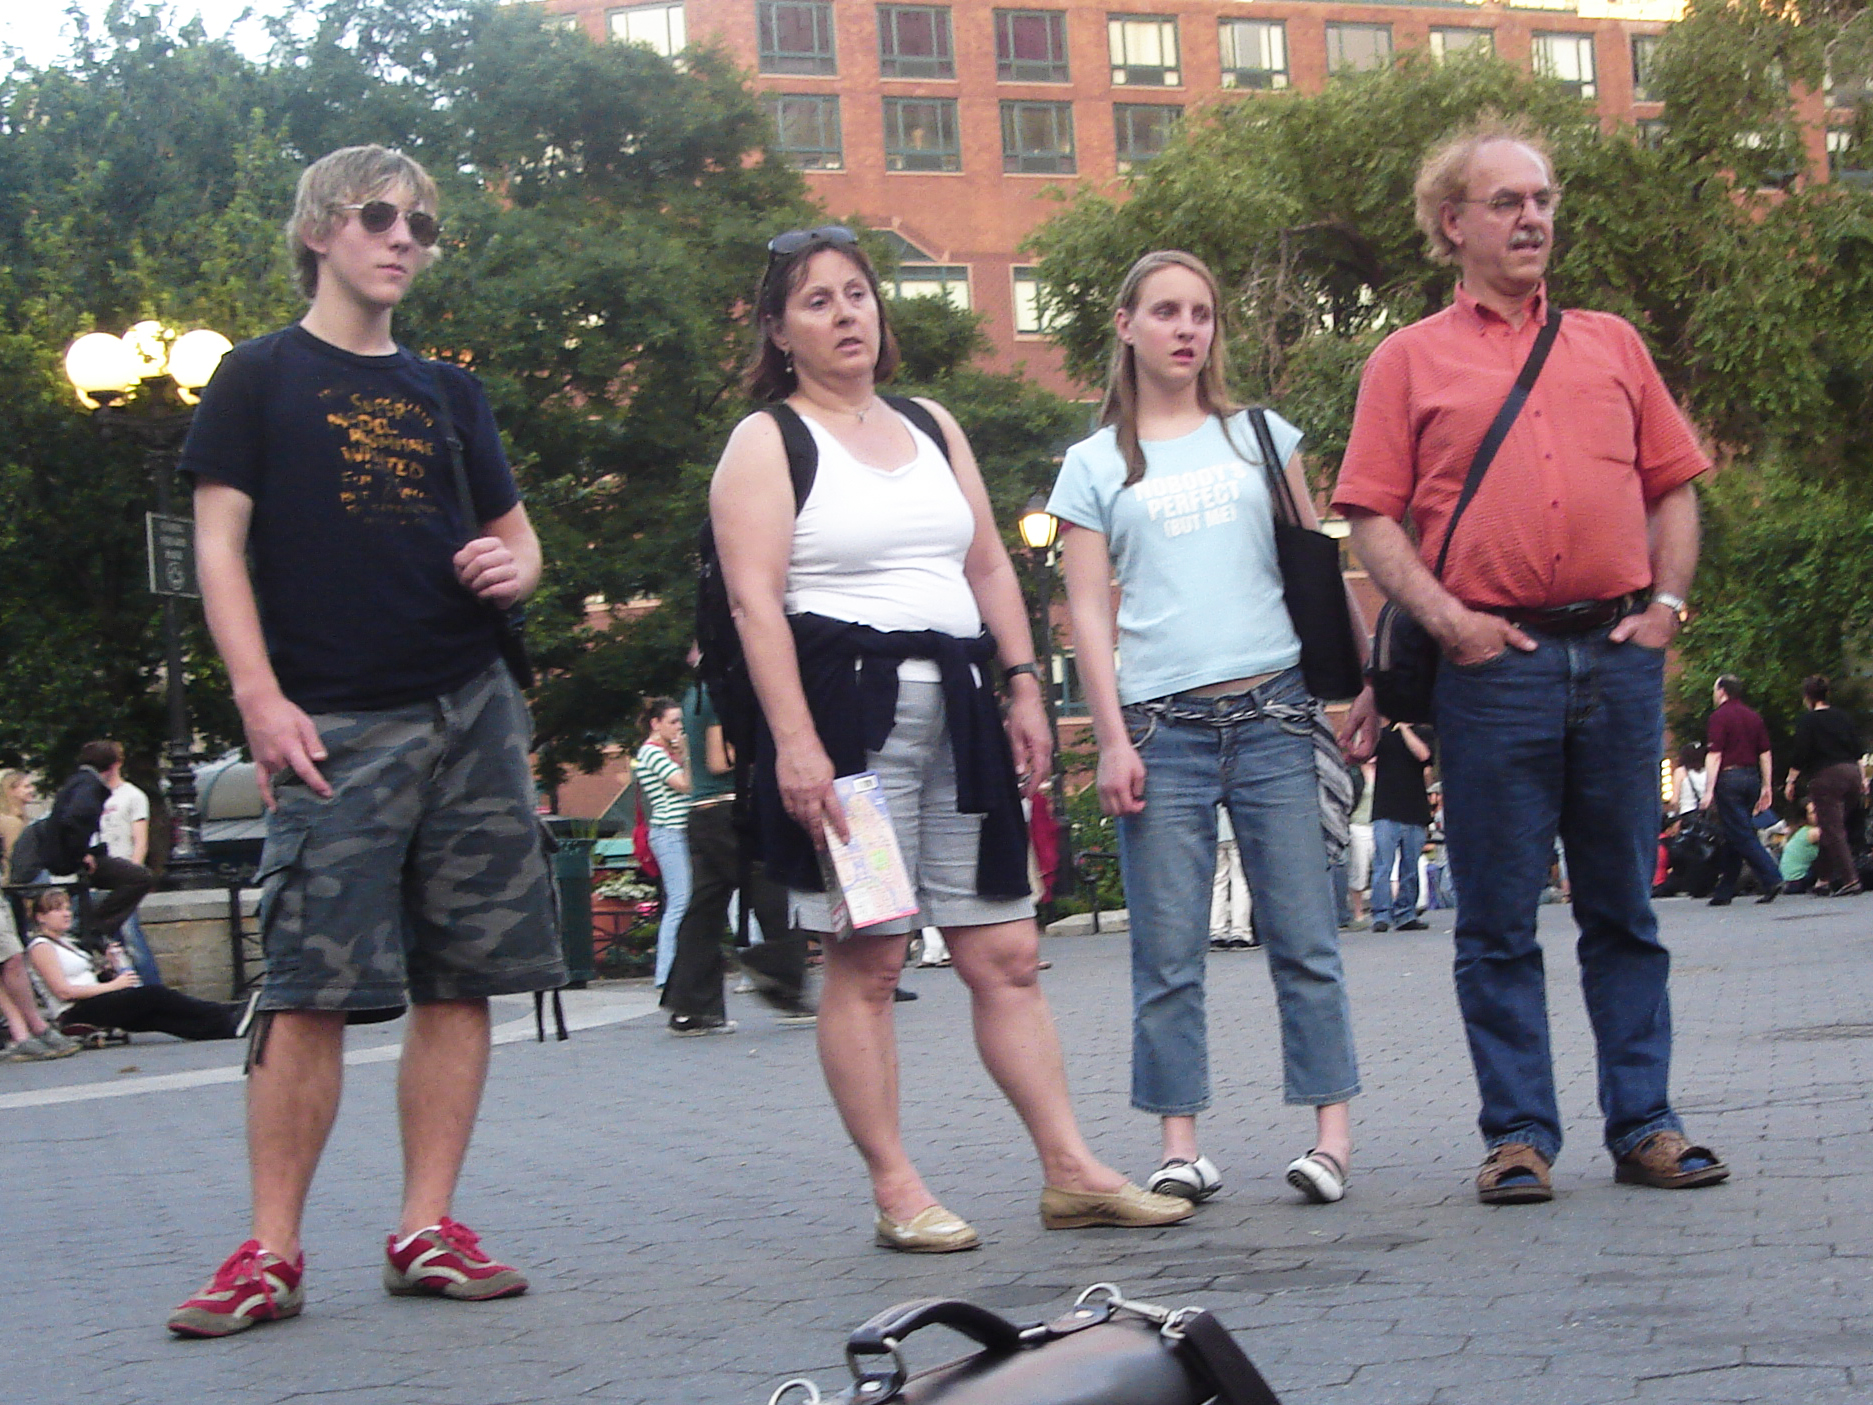 Tourist Family unimpressed with whatever's going on